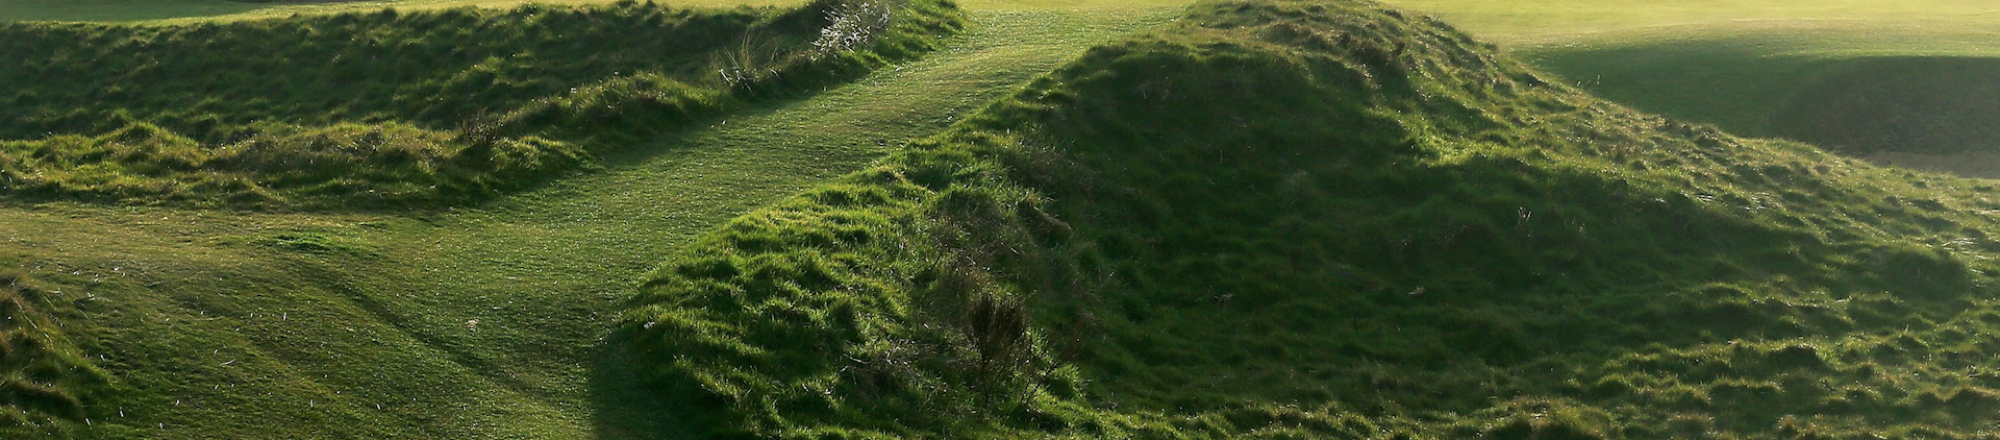 Played by NCG: Royal Troon